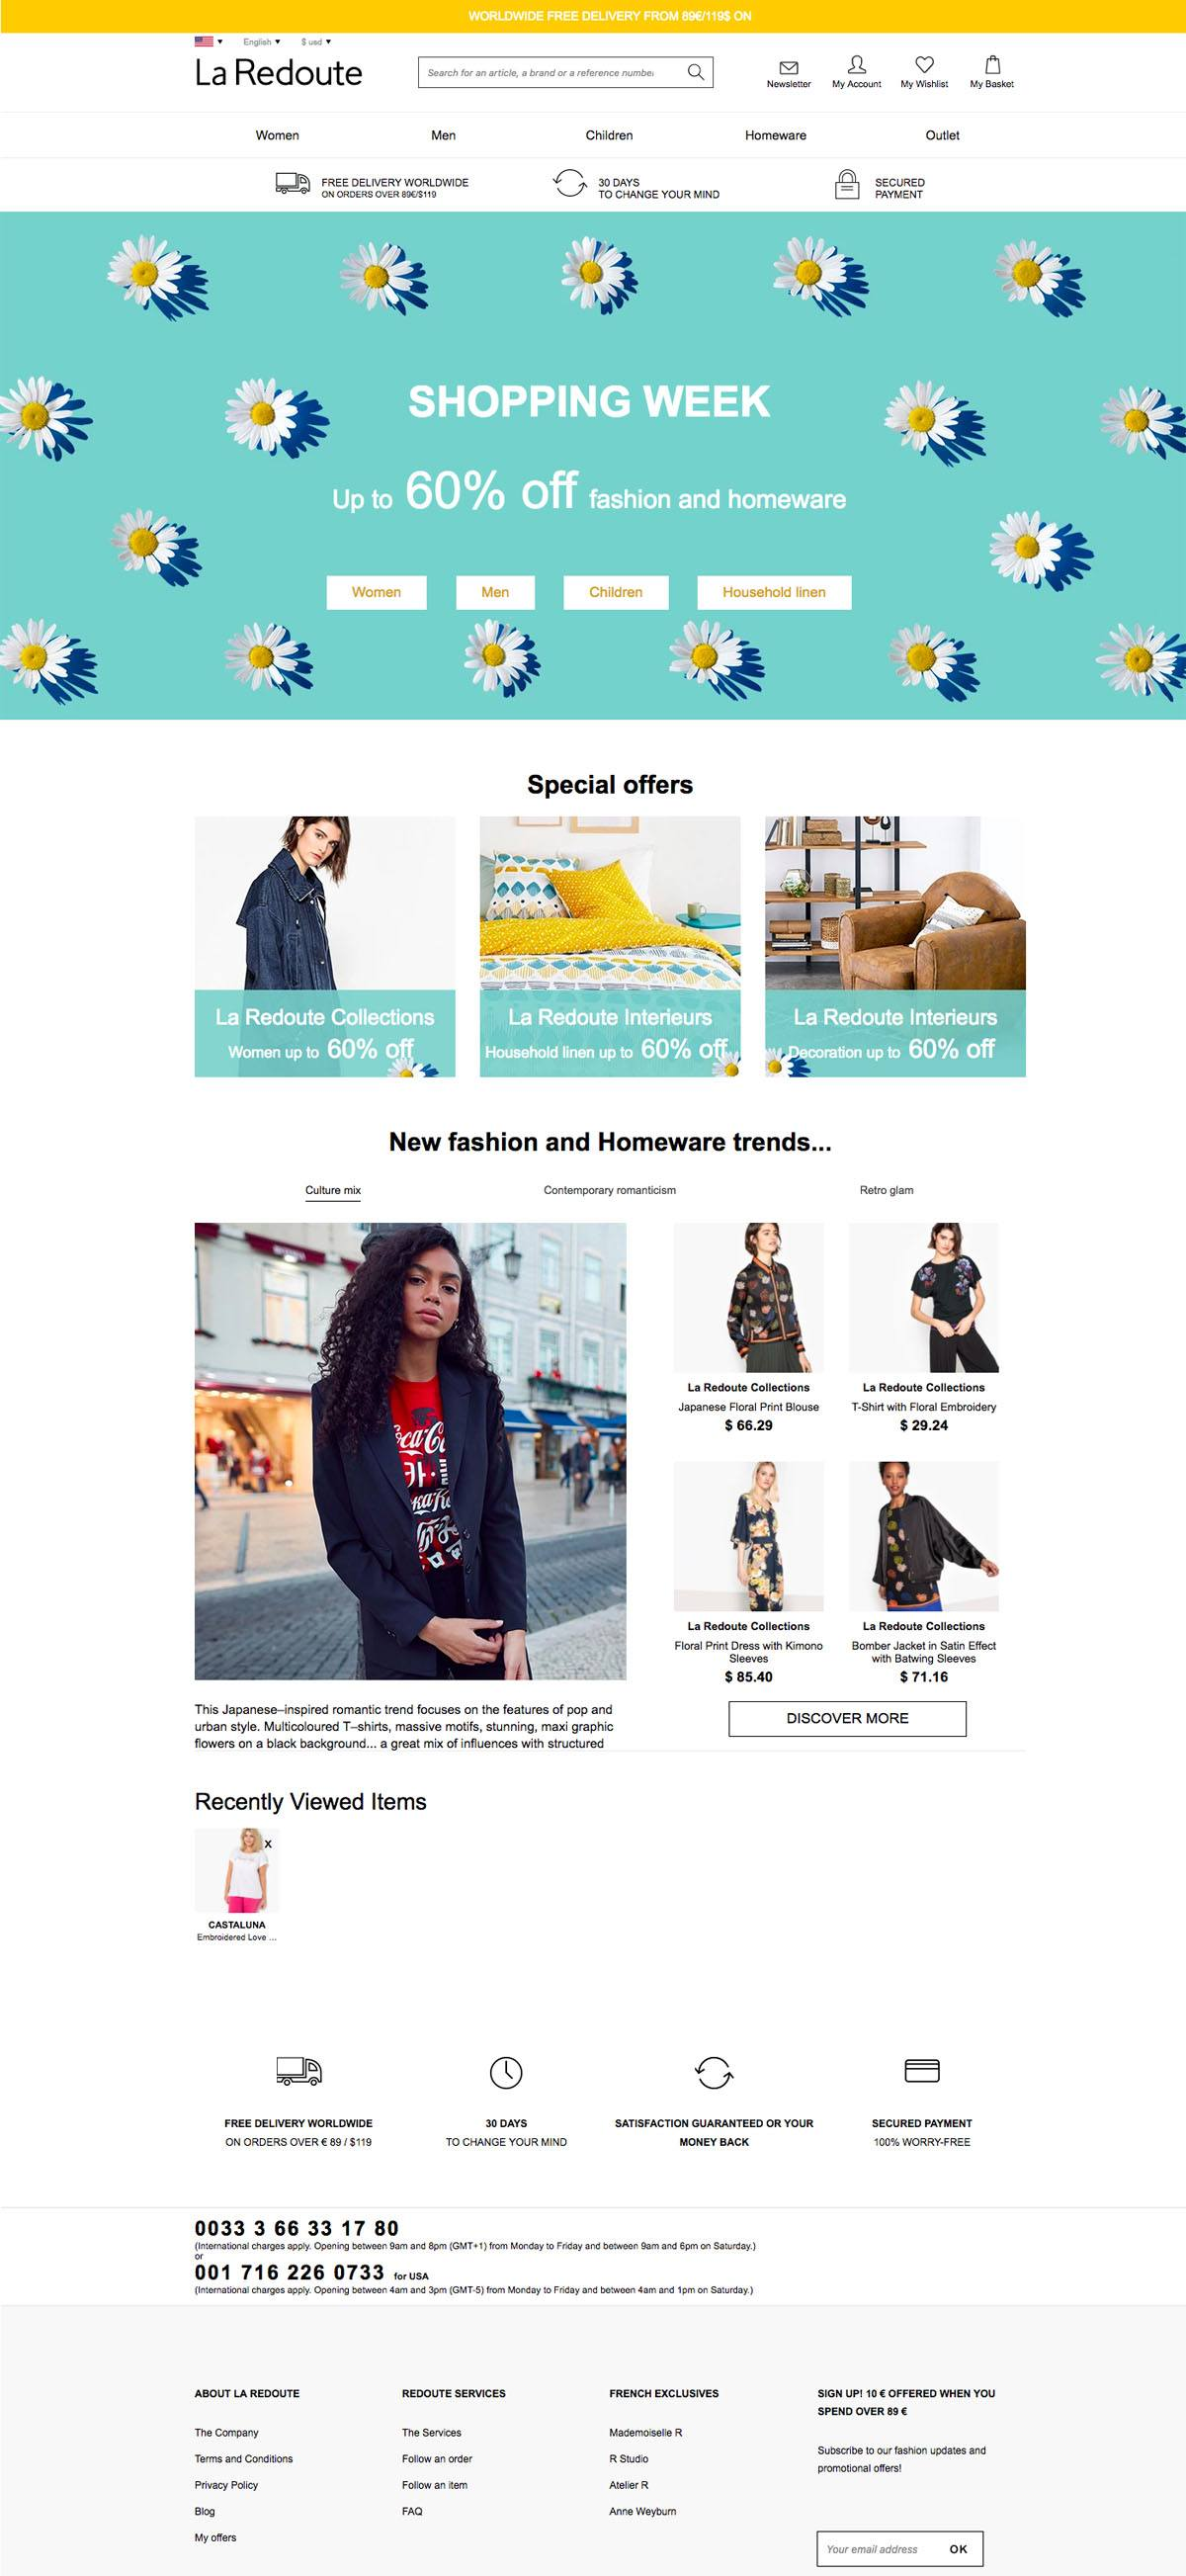 La Redoute Ecommerce Website Design Gallery Tech Inspiration